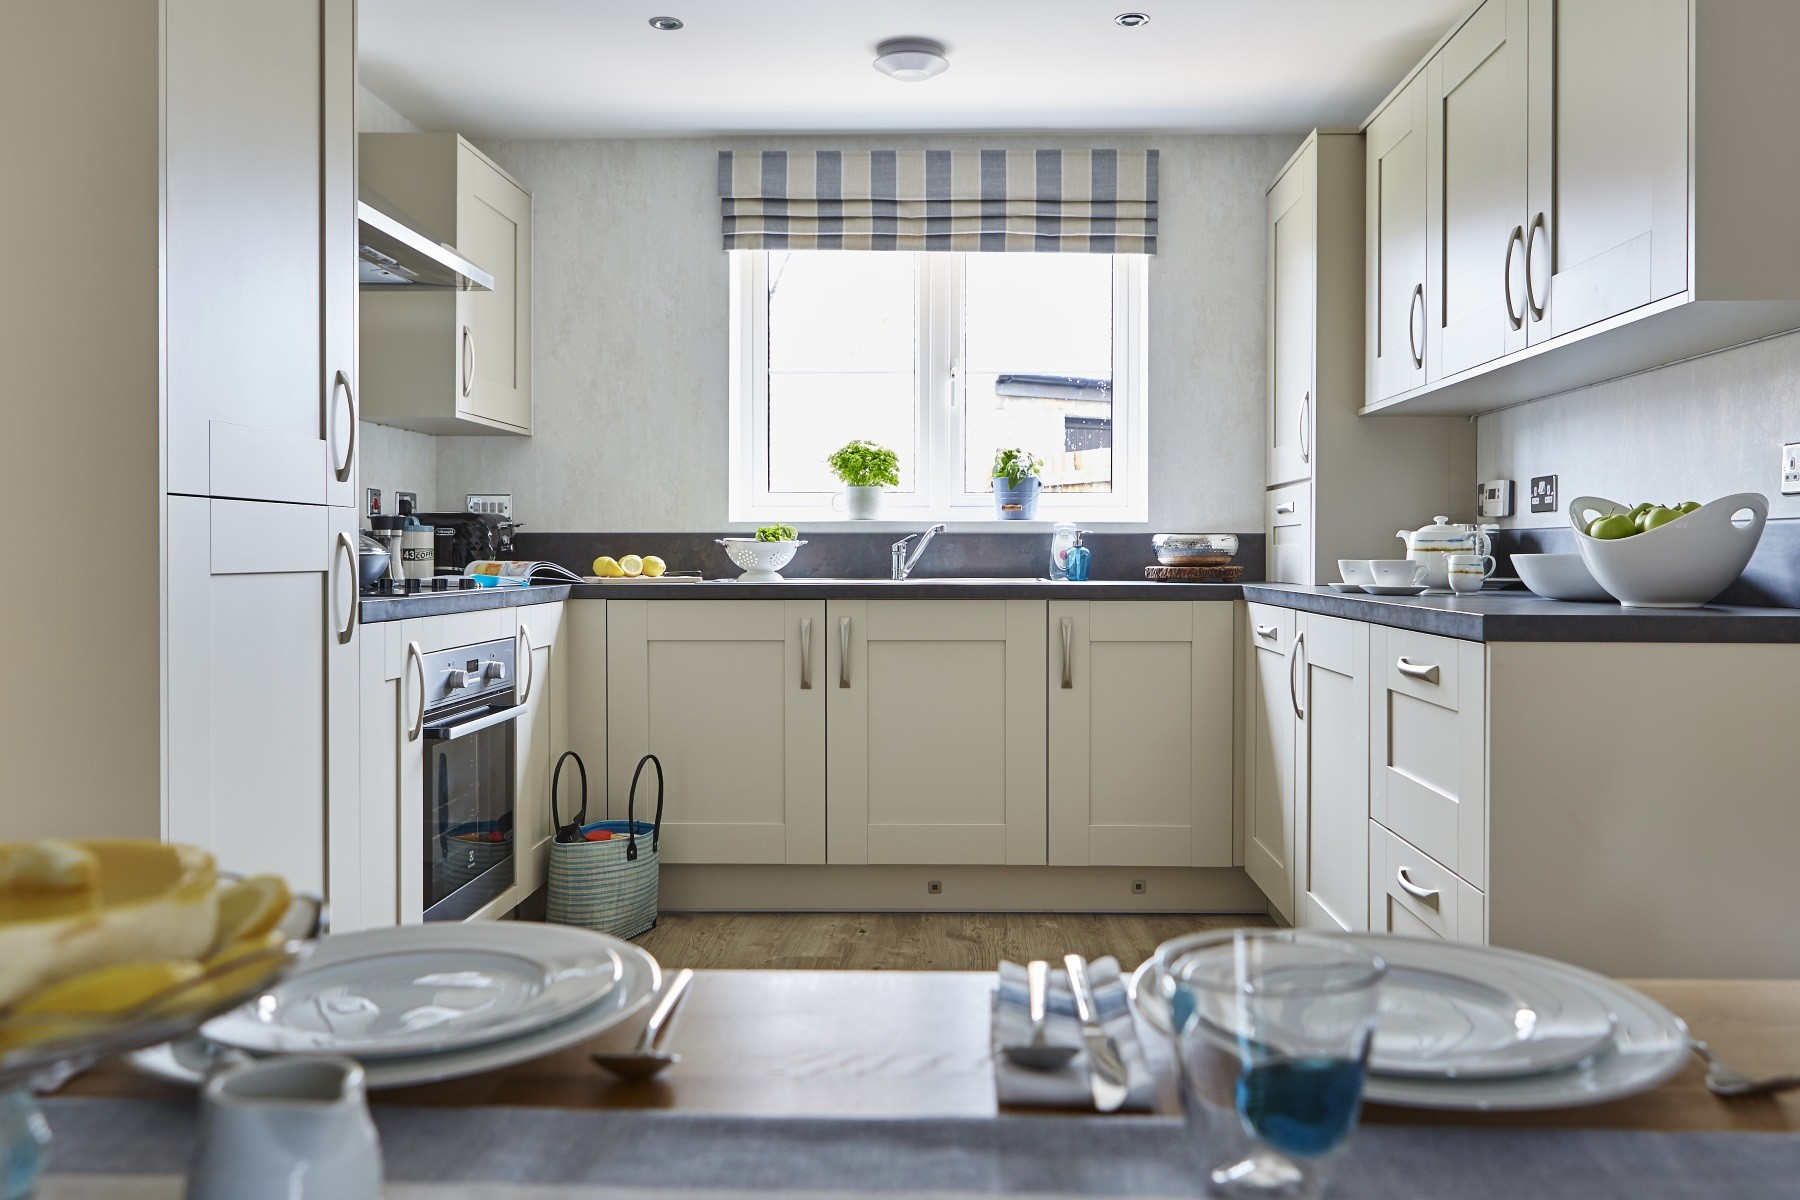 Taylor Wimpey Exeter - Cranbrook - Yewdale example kitchen 2